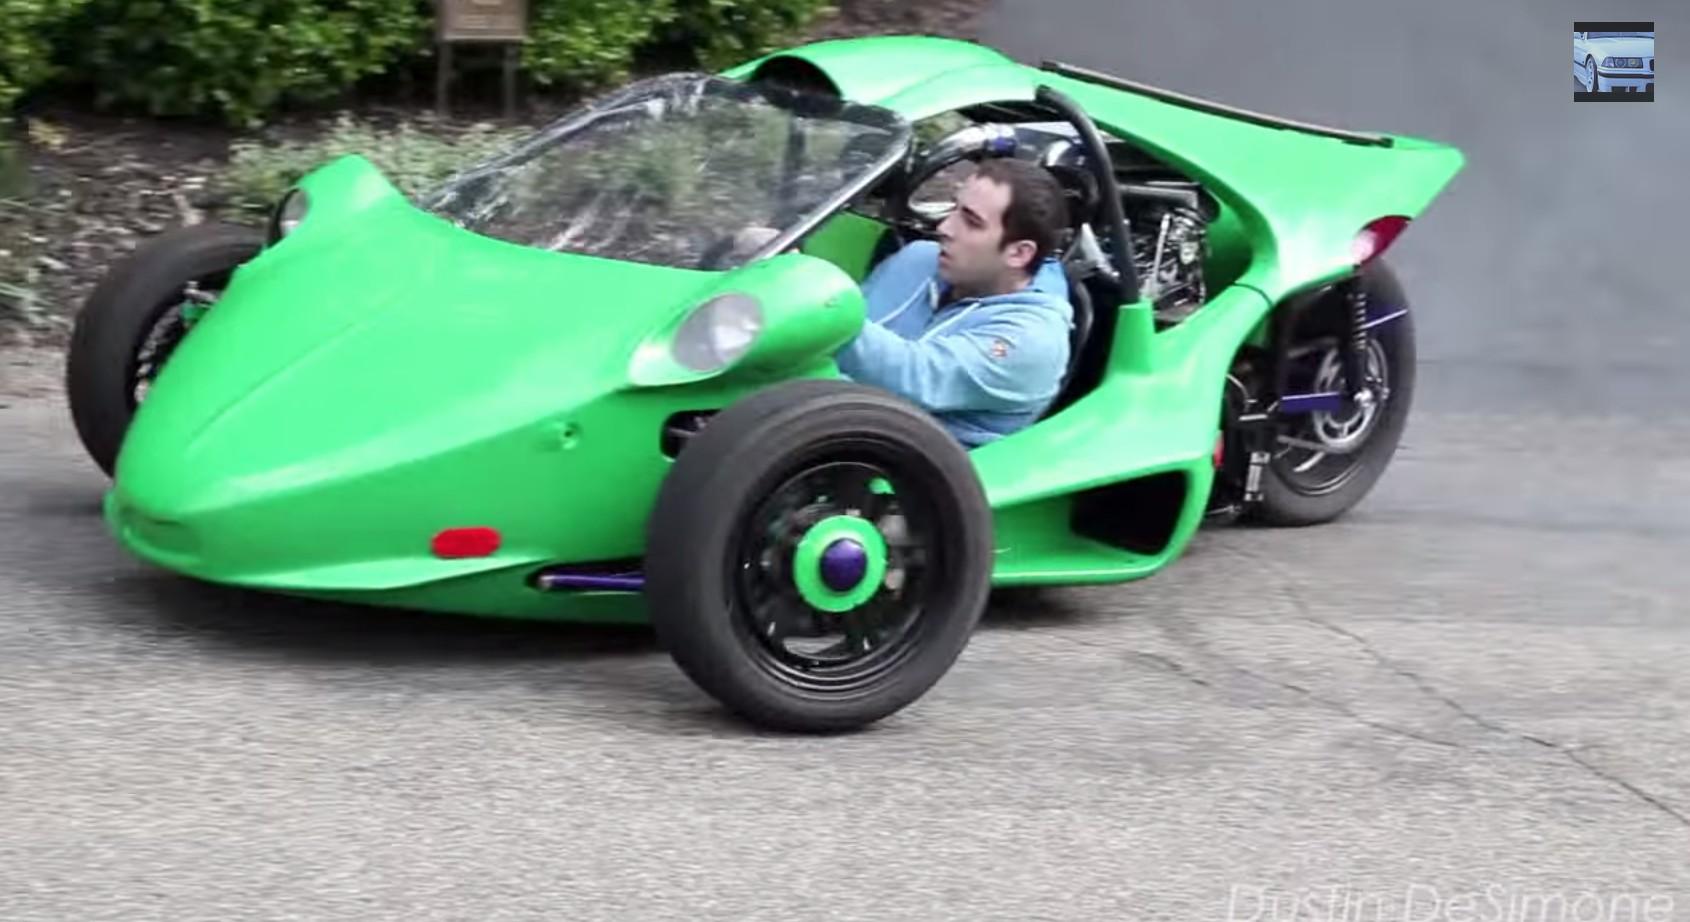 Turbo Hayabusa T Rex Three Wheeler Looks Like Suicidal Fun